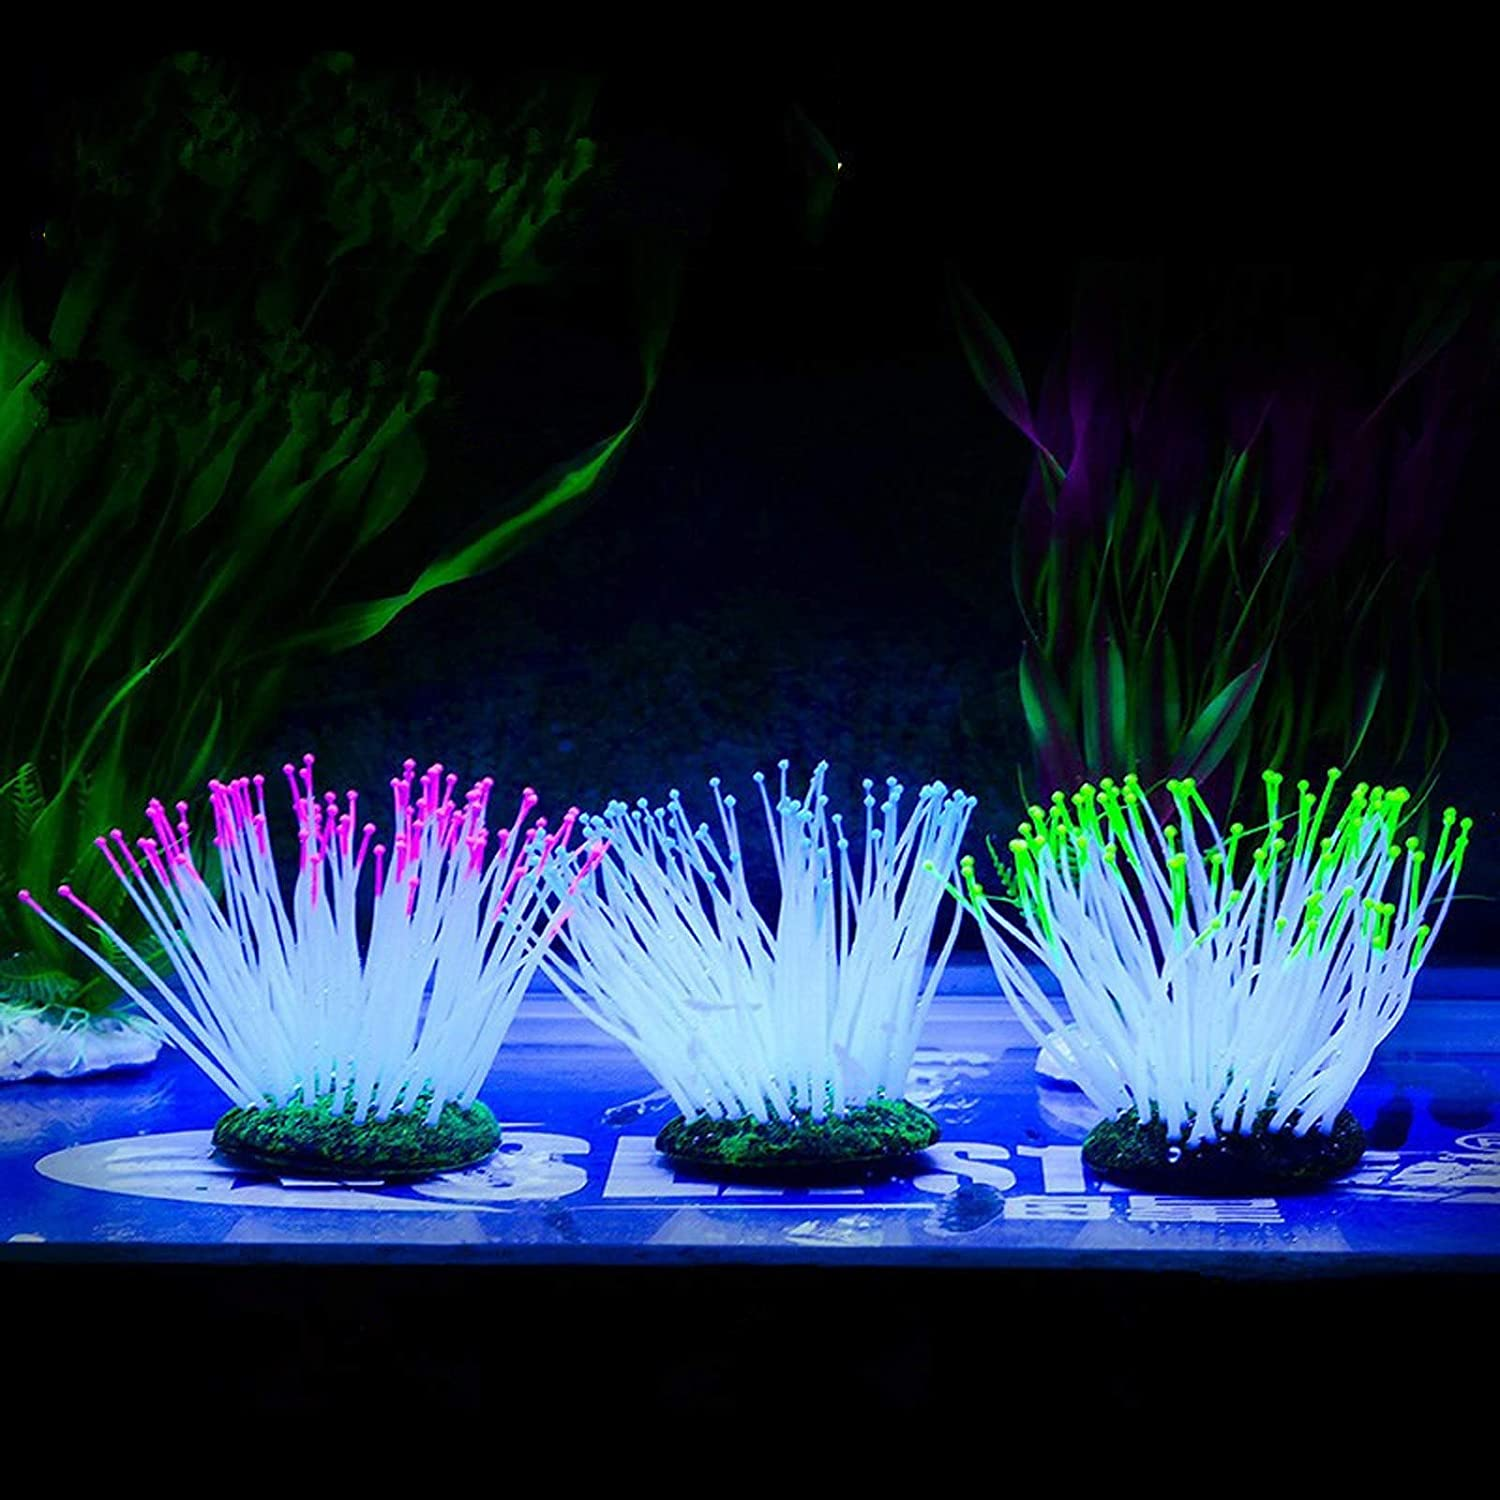 Besimple Artificial Luminous Sea Anemone Blue Simulation Silicone Coral Plants Ornament Glowing Sea Anemone with Suction Cup for Aquarium Fish Tank Decoration